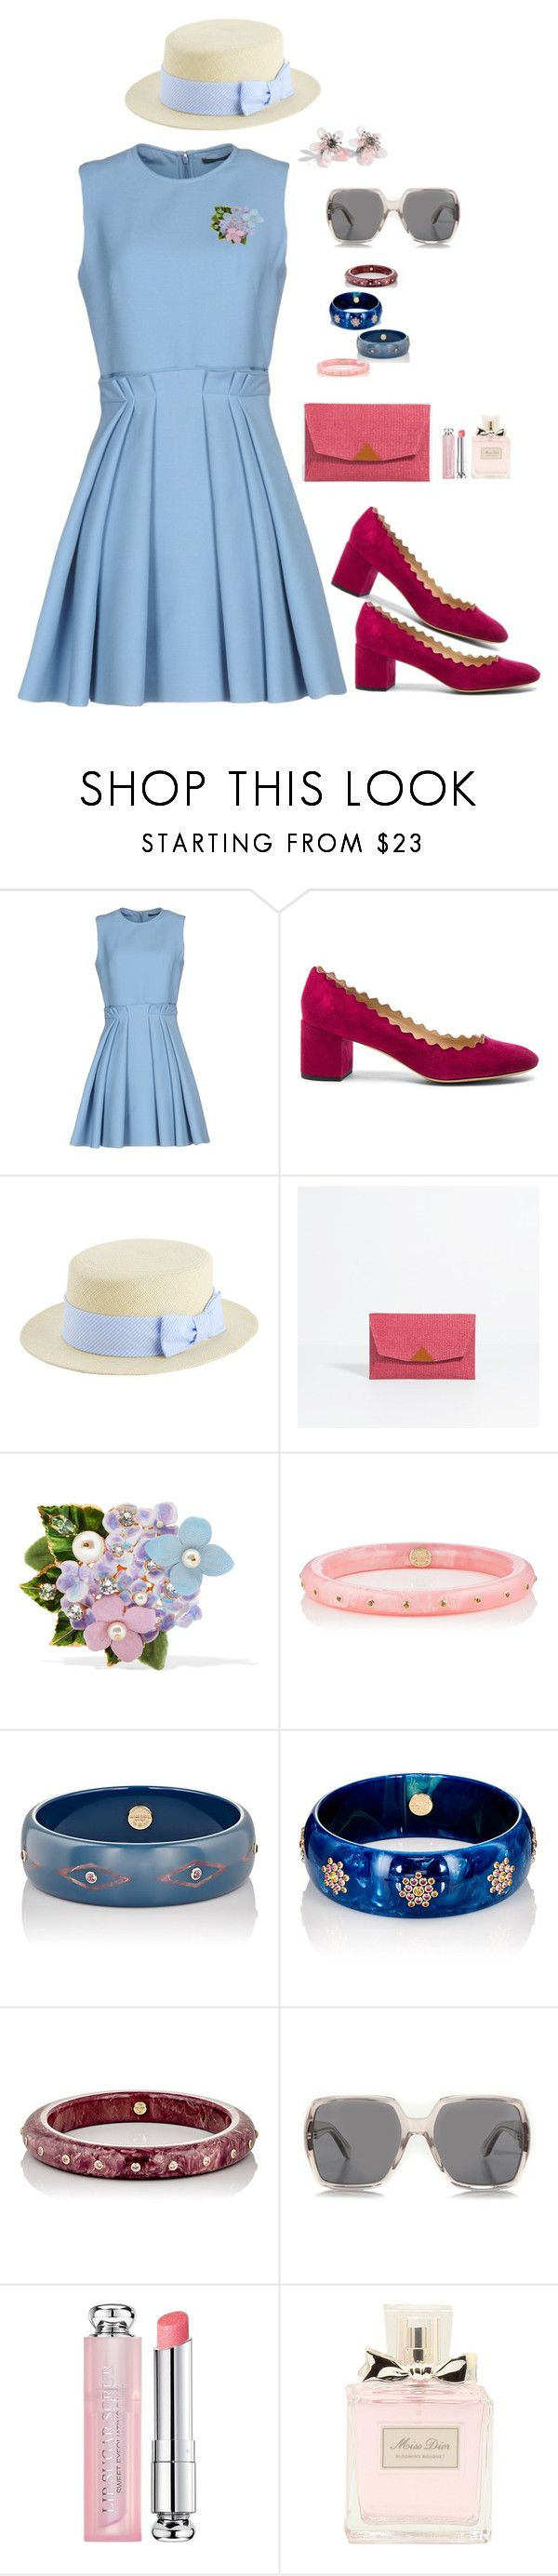 """""""Garden party, 2."""" by srtagraham ❤ liked on Polyvore featuring Alexander McQueen, Chloé, Dolce&Gabbana, Mark Davis, Yves Saint Laurent and Christian Dior"""